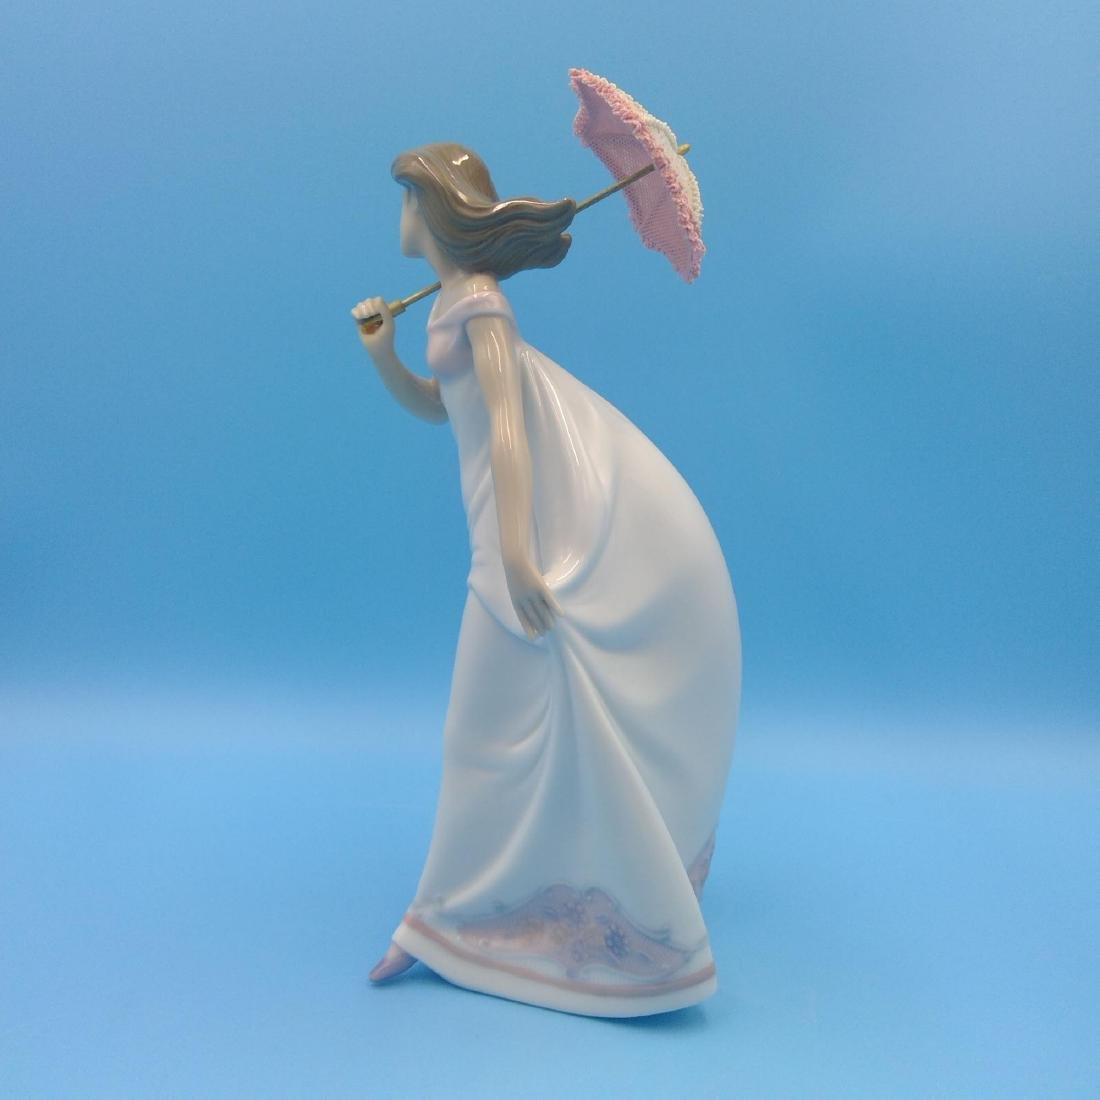 LLADRO PORCELAIN FIGURINE GIRL WITH UMBRELLA - 2